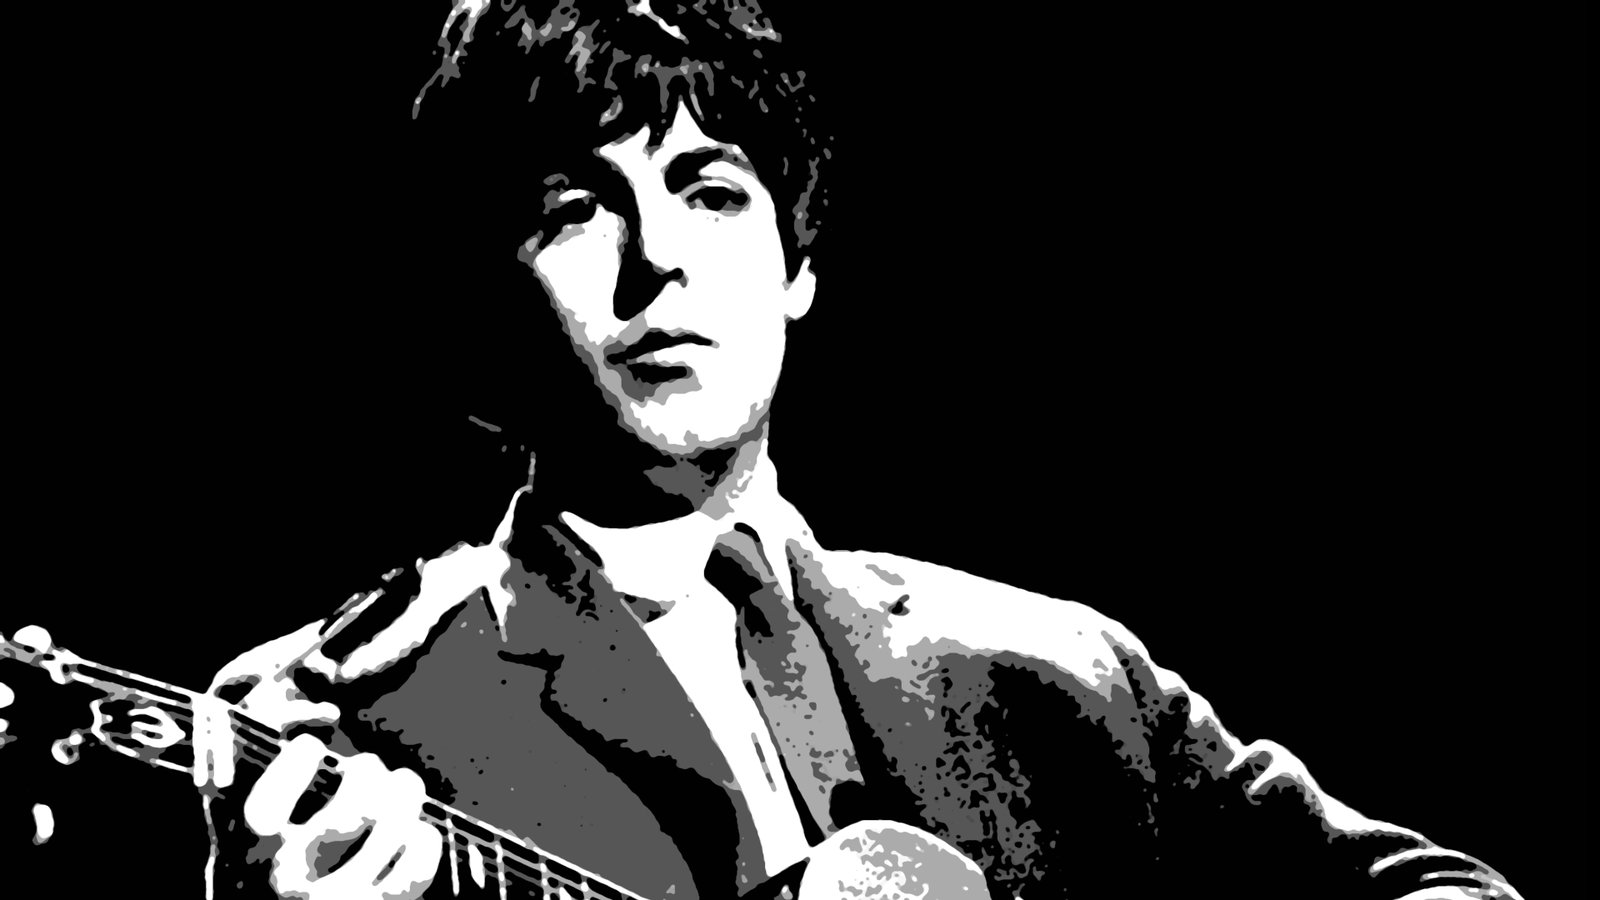 ... paul-mccartney-wallpaper ...